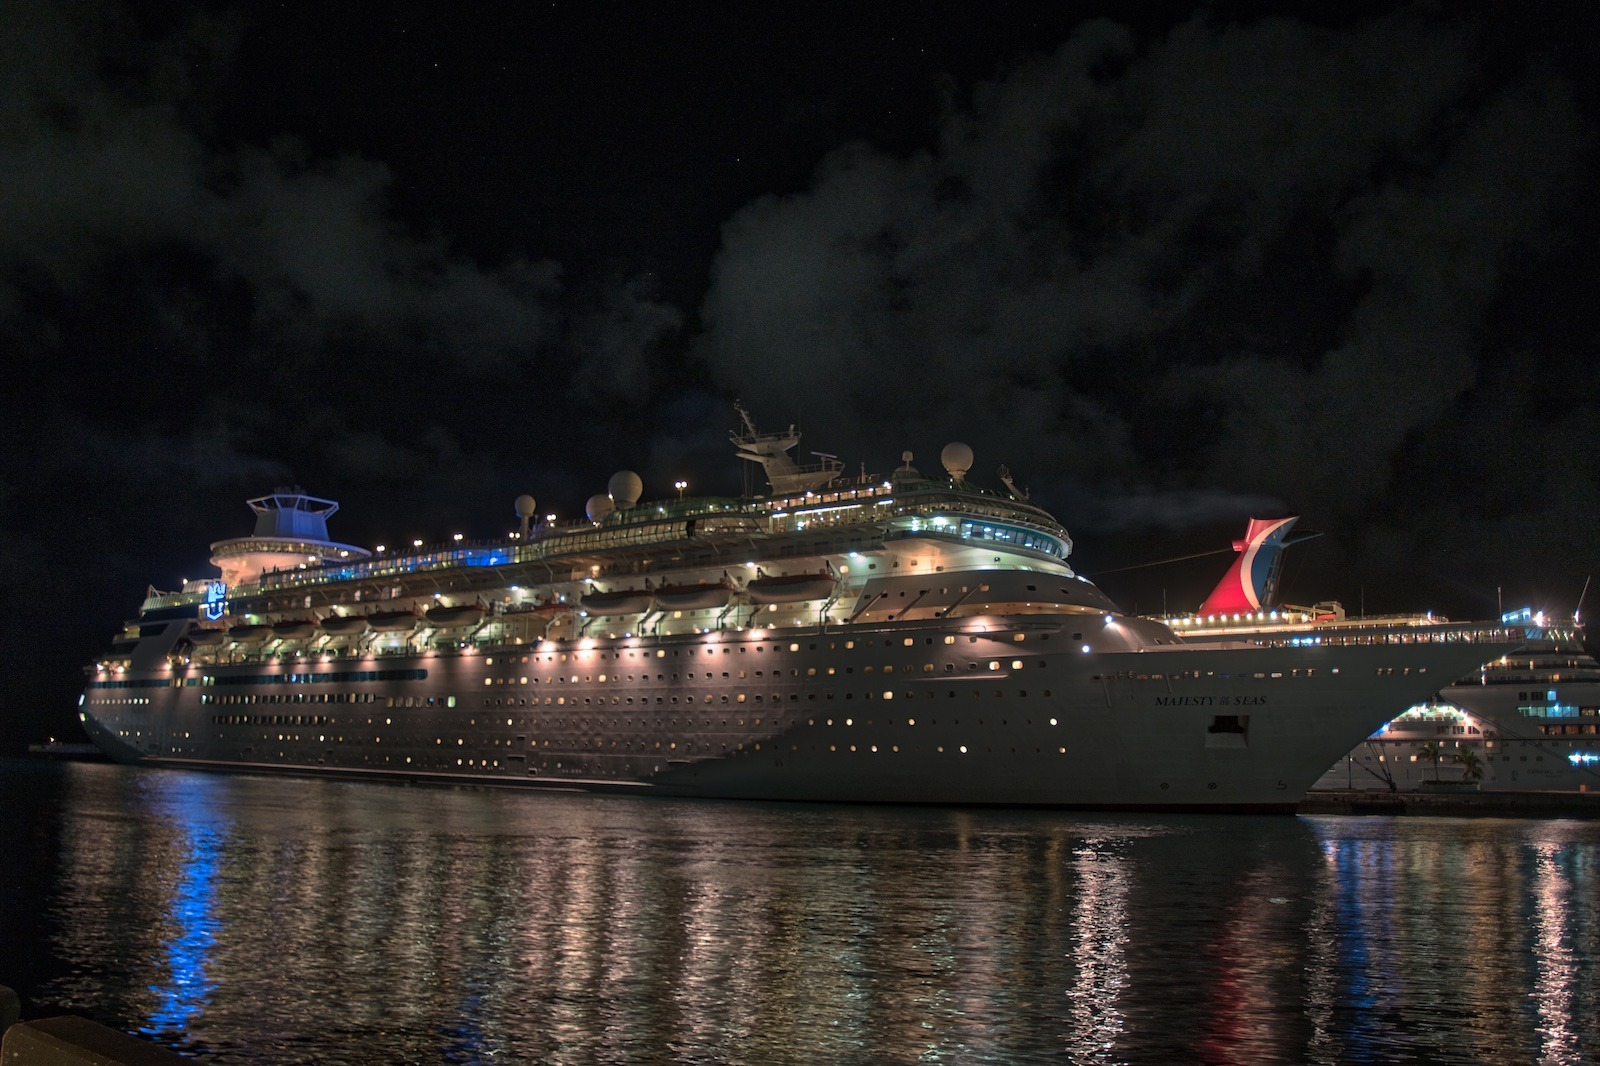 Family Travel Review: Royal Caribbean Majesty of the Seas Cruise to the Bahamas